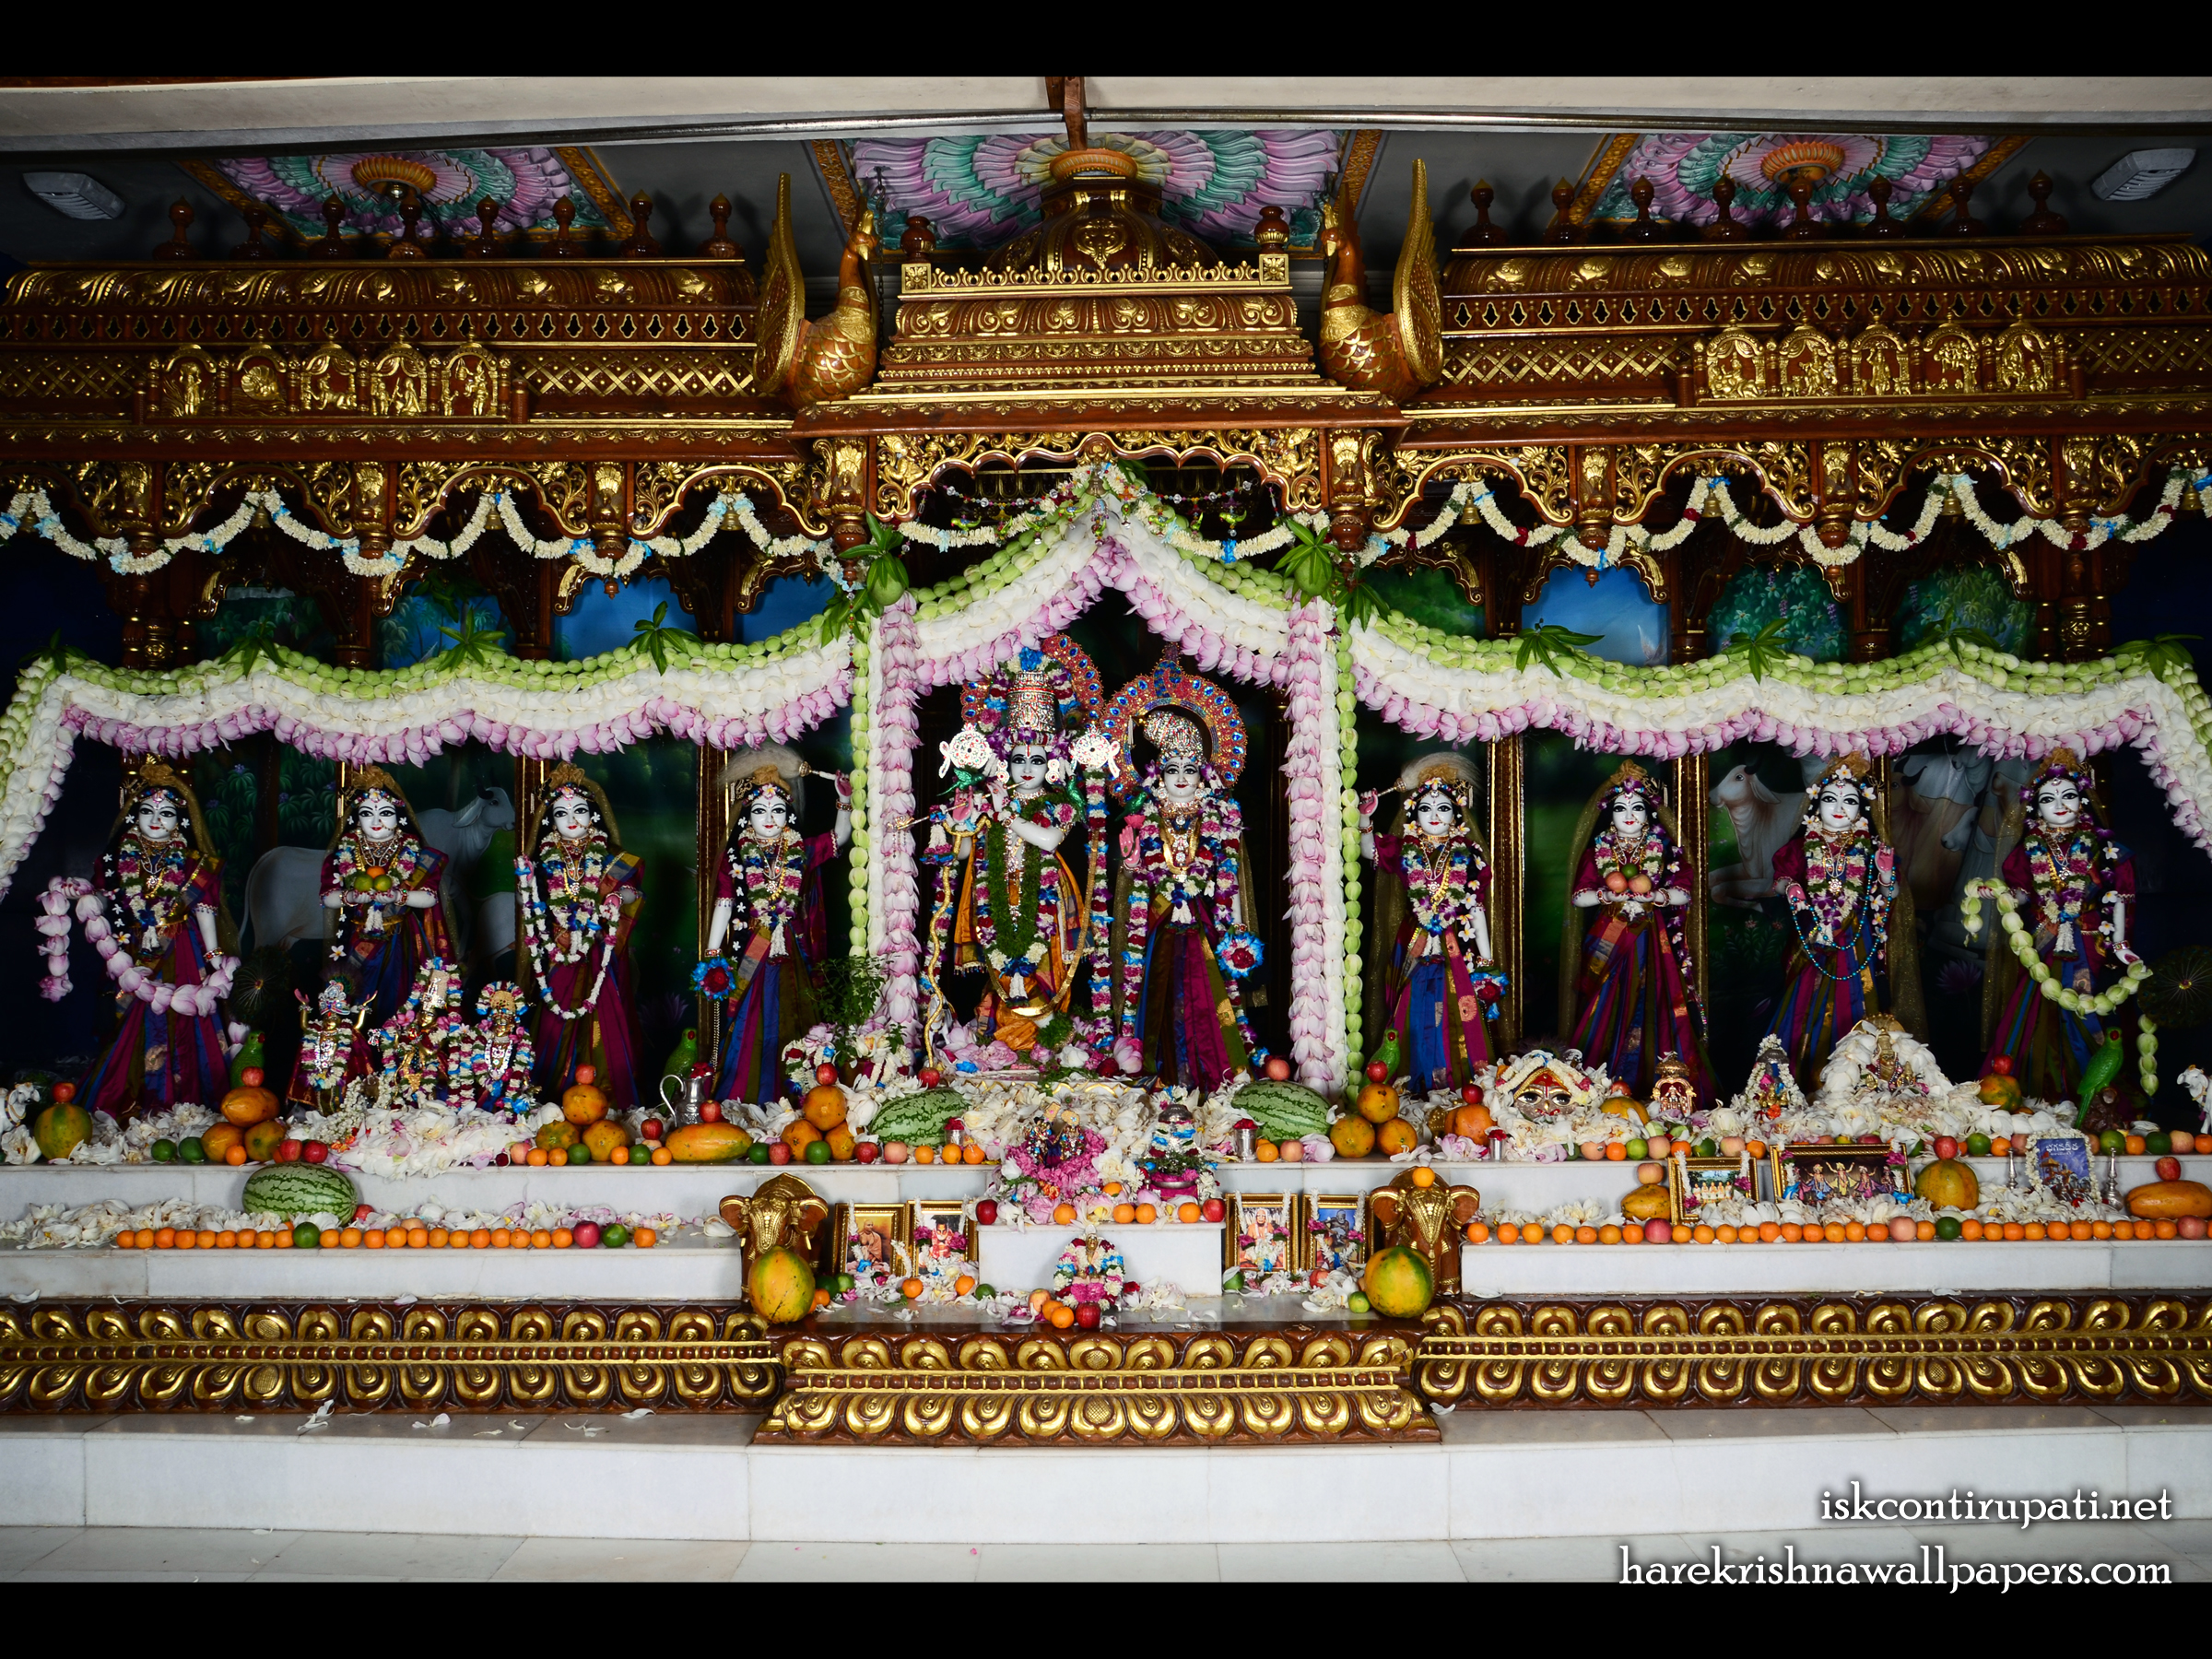 Sri Sri Radha Govinda with Ashtasakhi Wallpaper (008) Size 2400x1800 Download